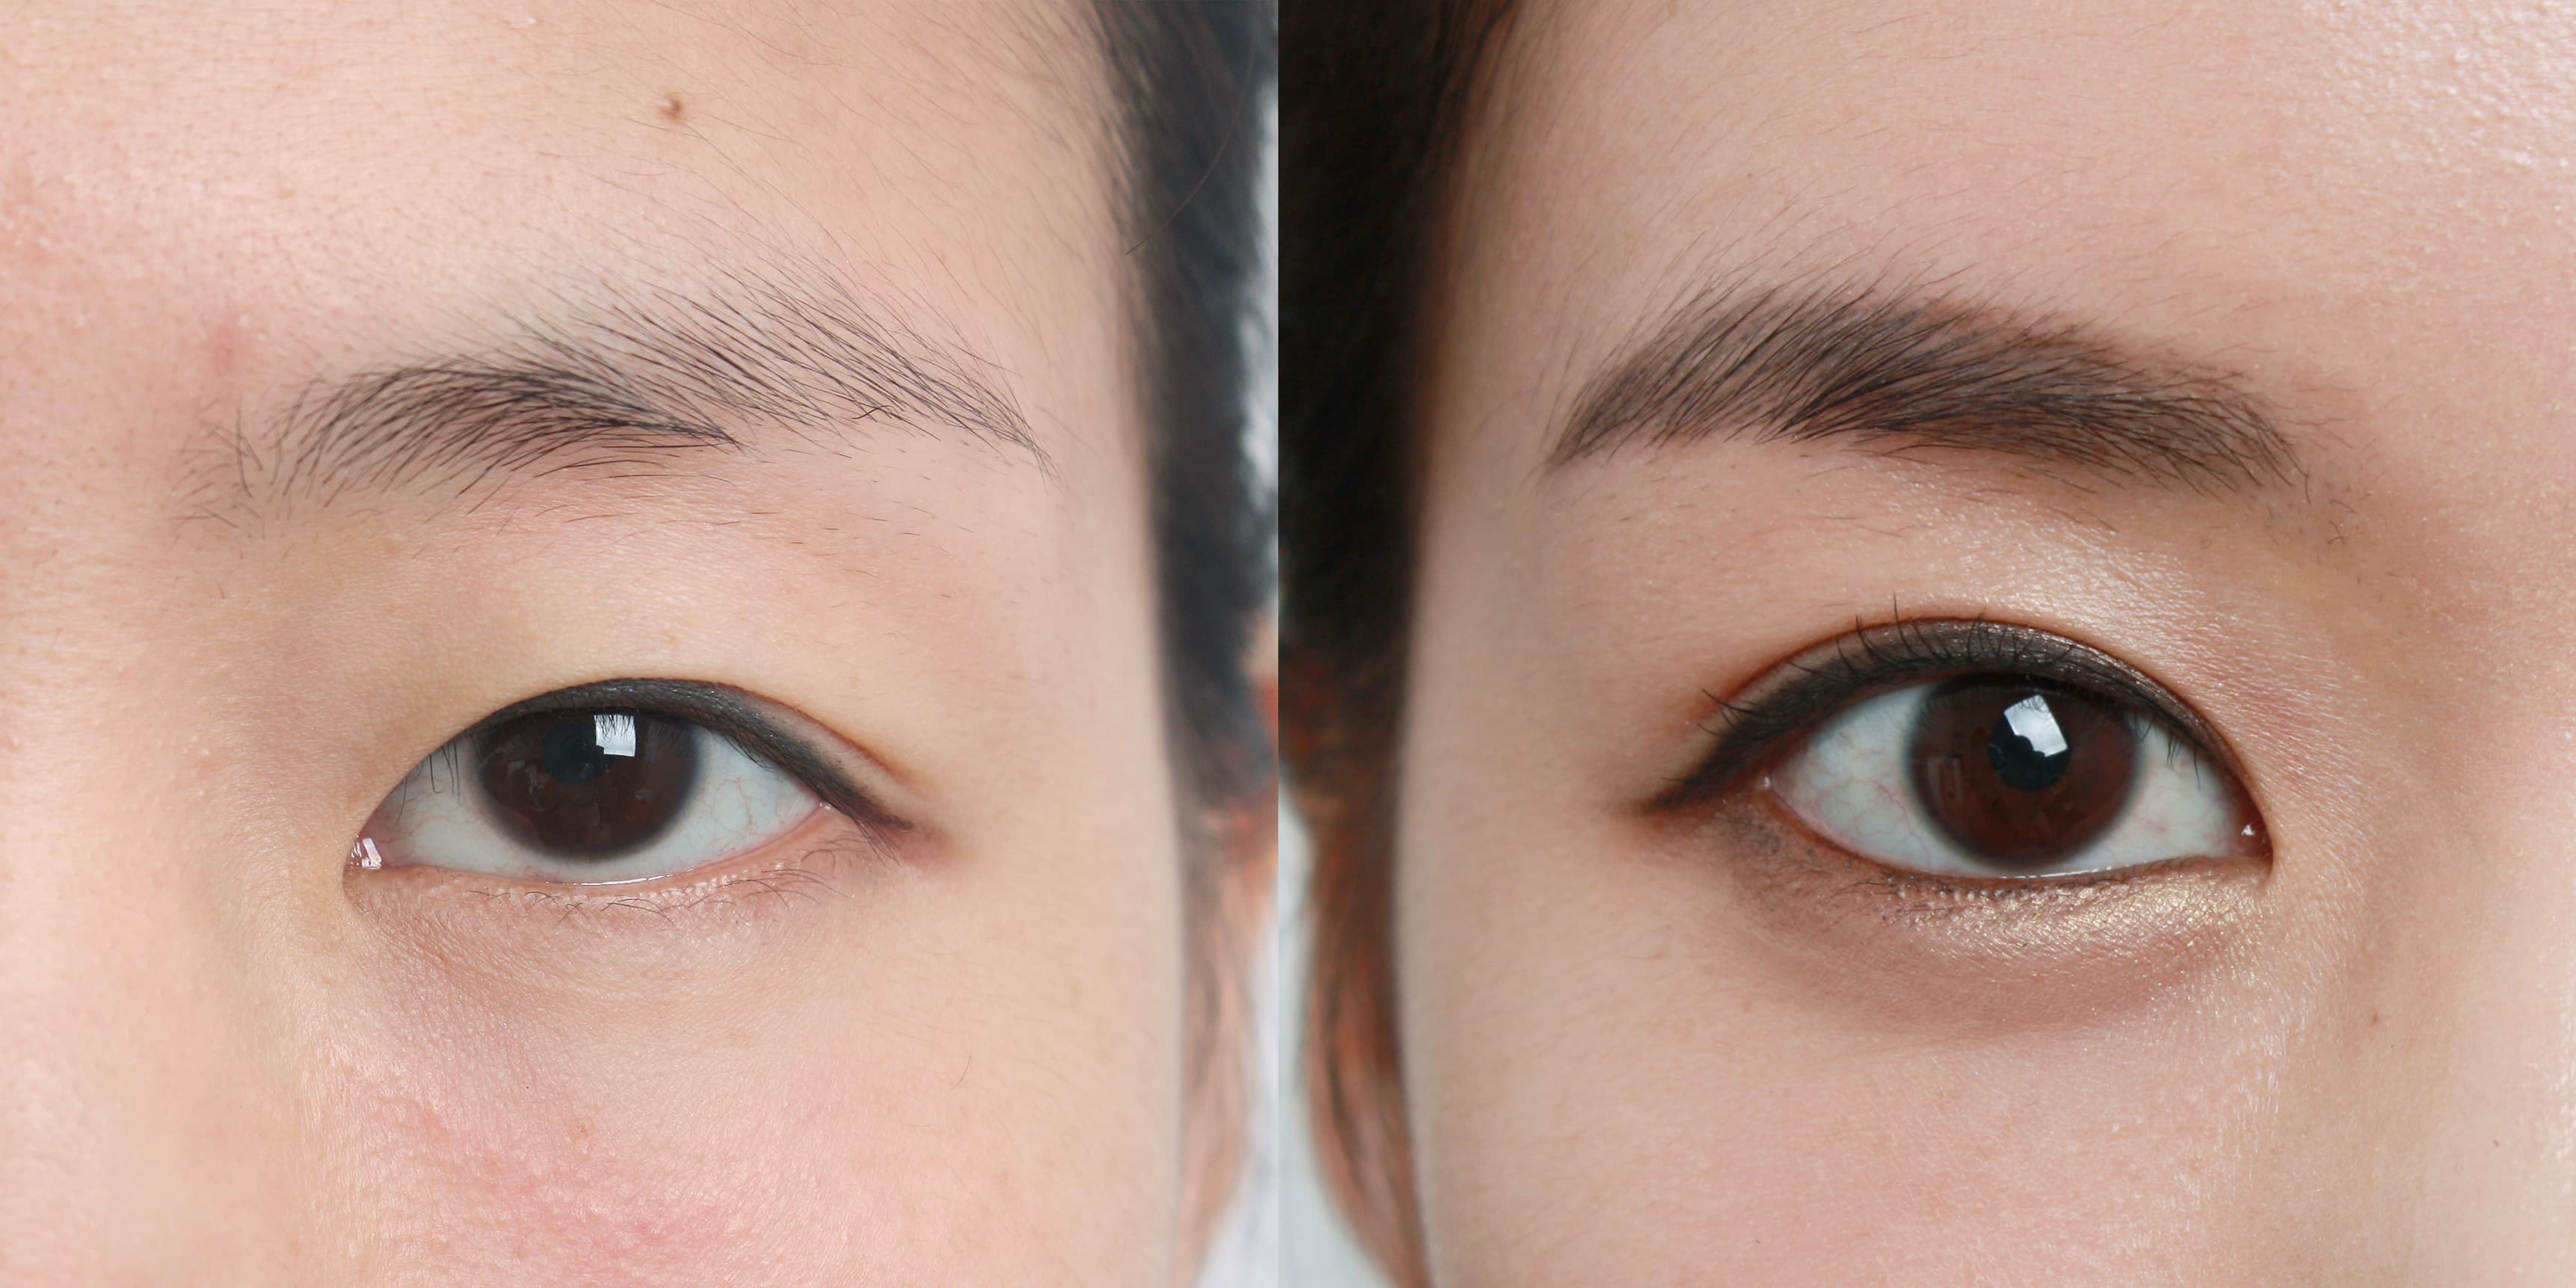 Plastic Surgery Thailand Before And After photo - 1